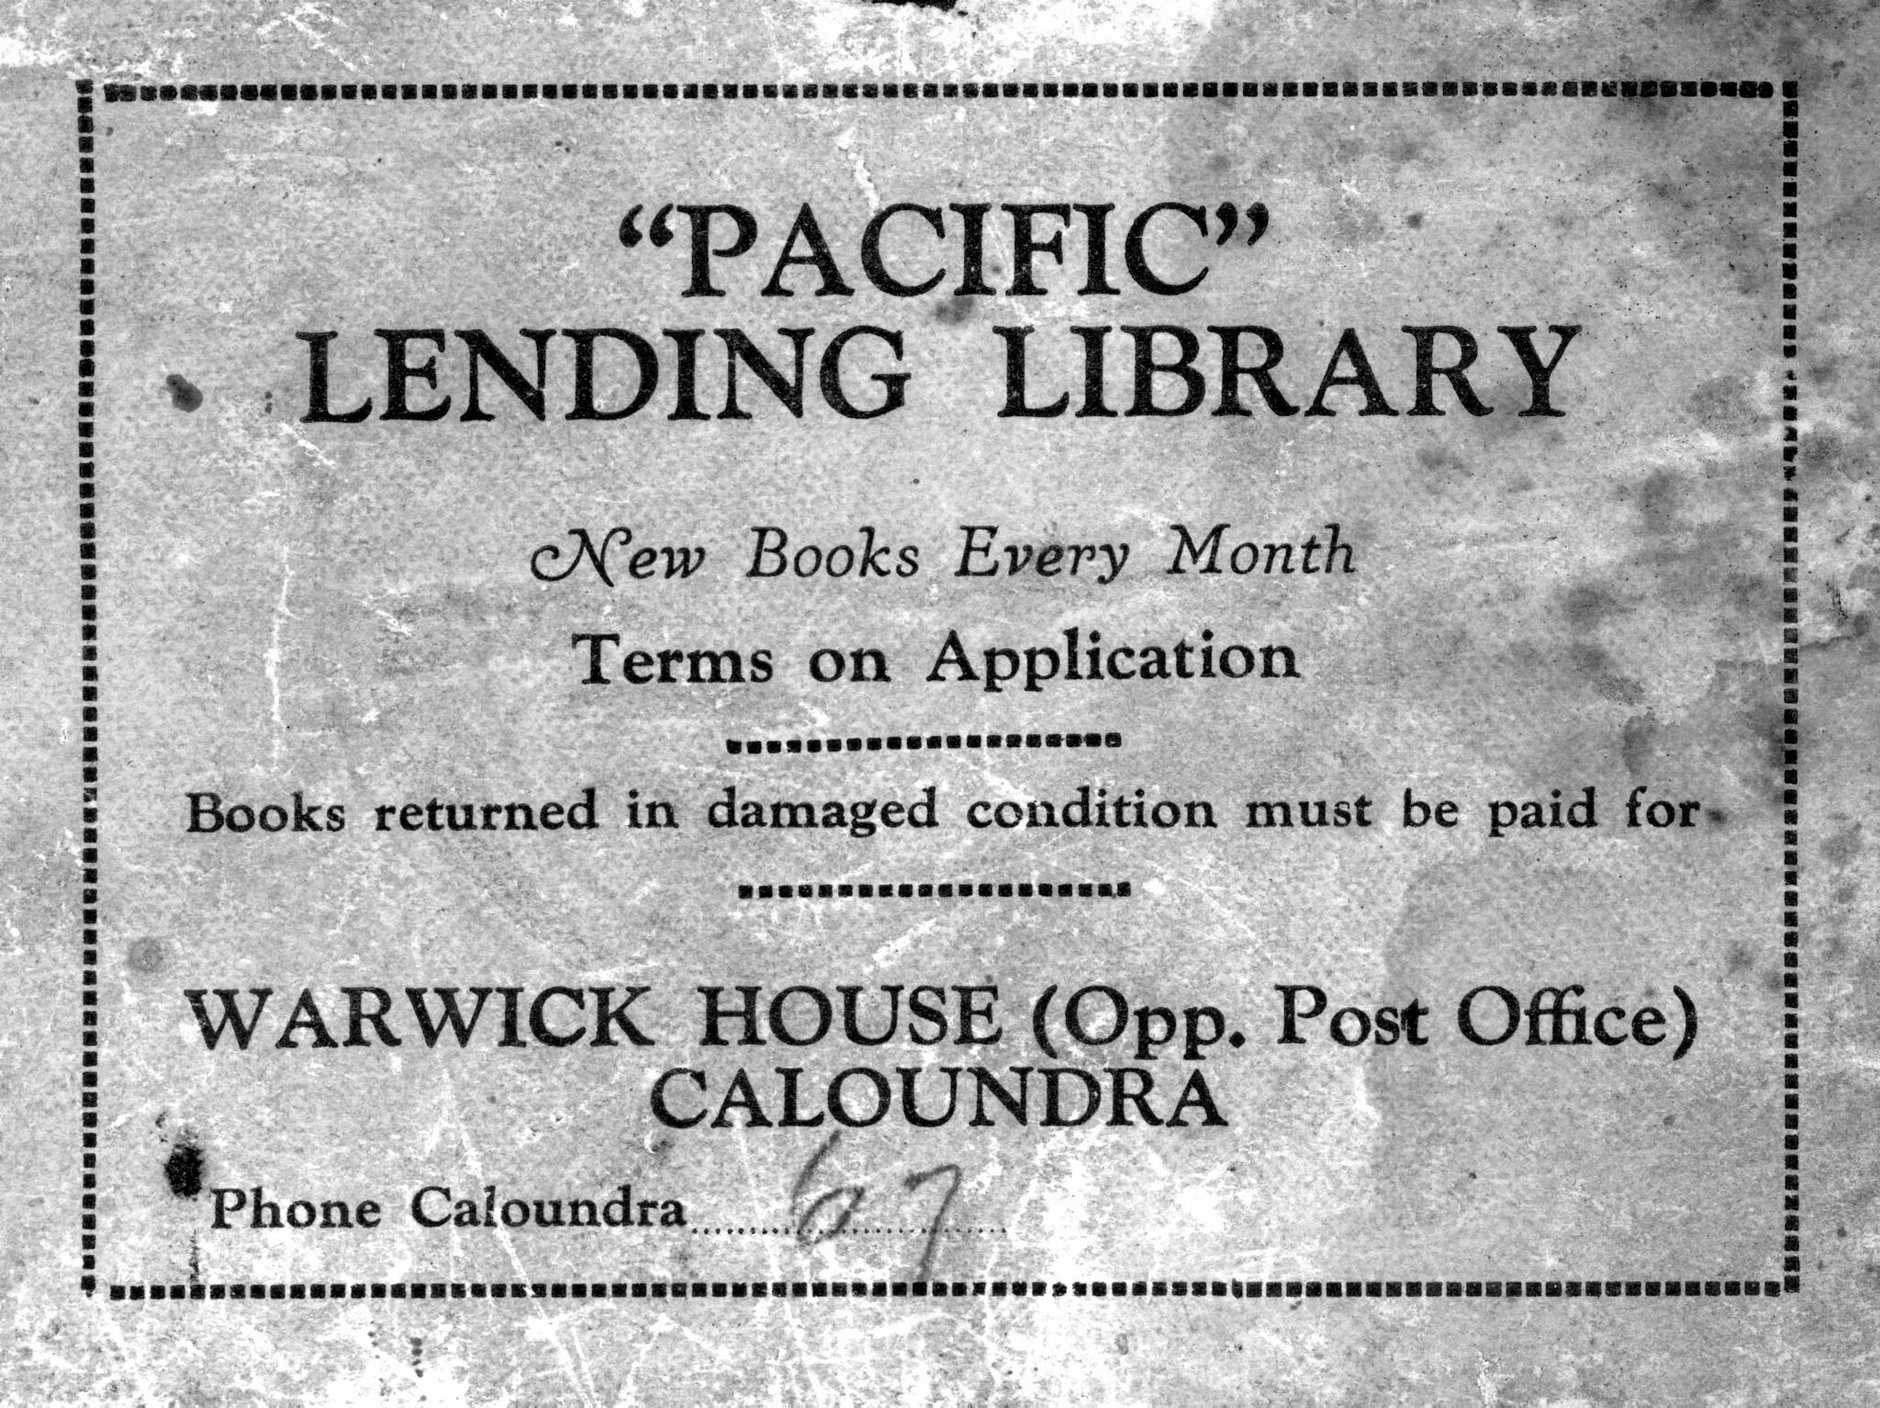 Book label from the privately owned Pacific Lending Library in Bulcock Street, Caloundra, ca 1940.